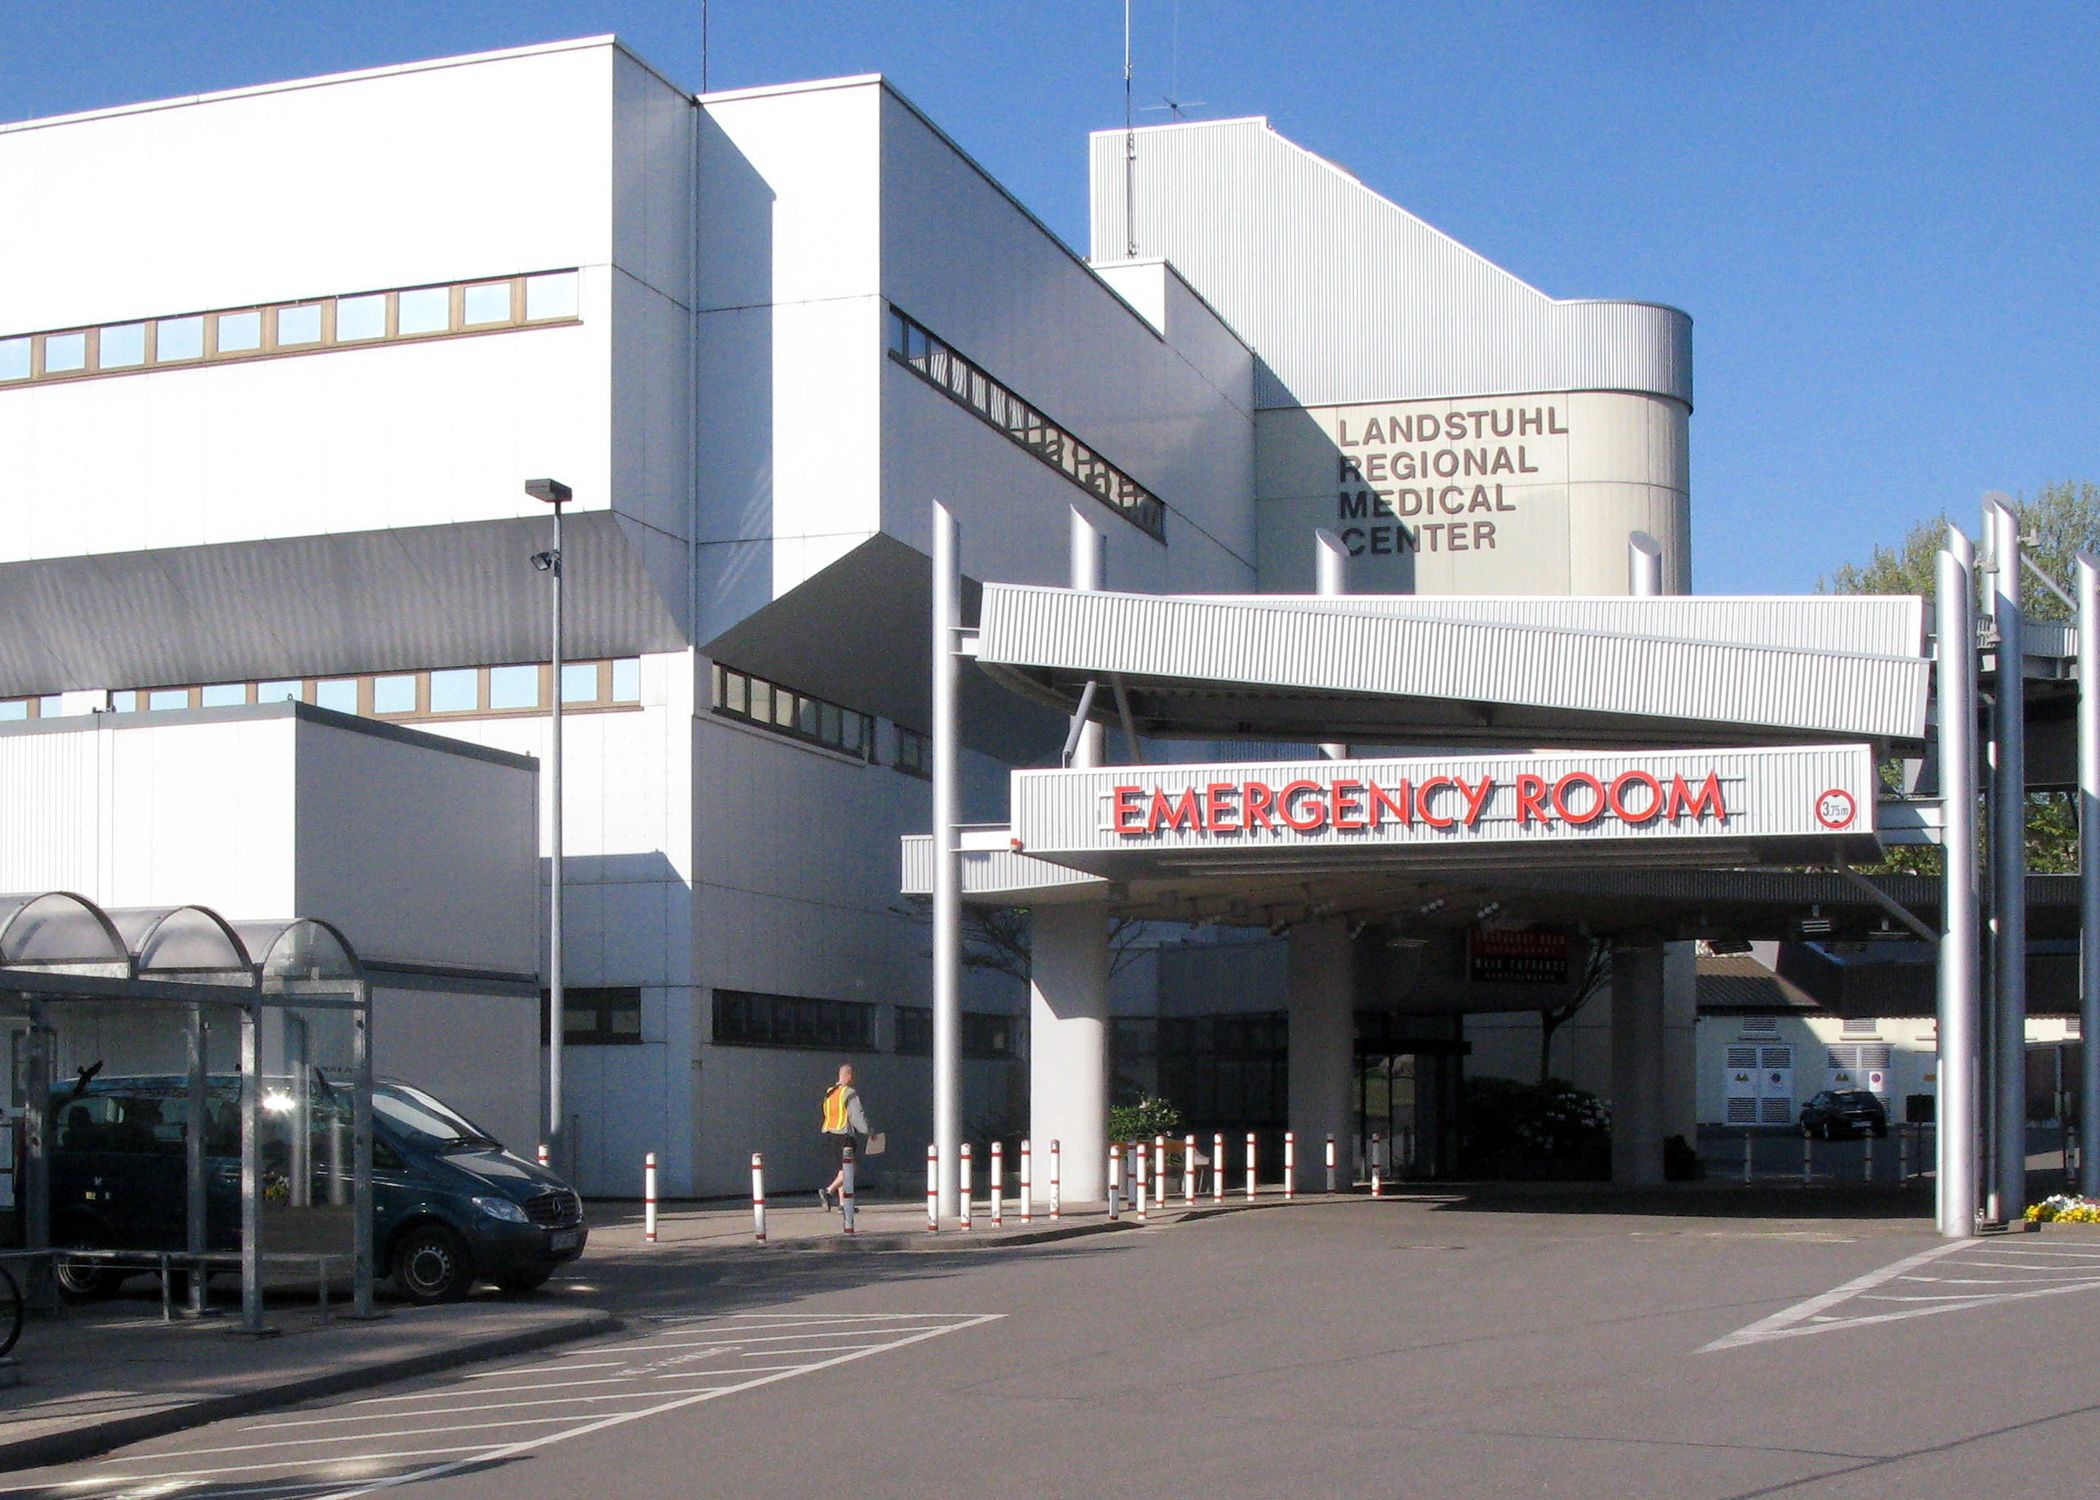 Lrmc was the last german hospital marshall was in before